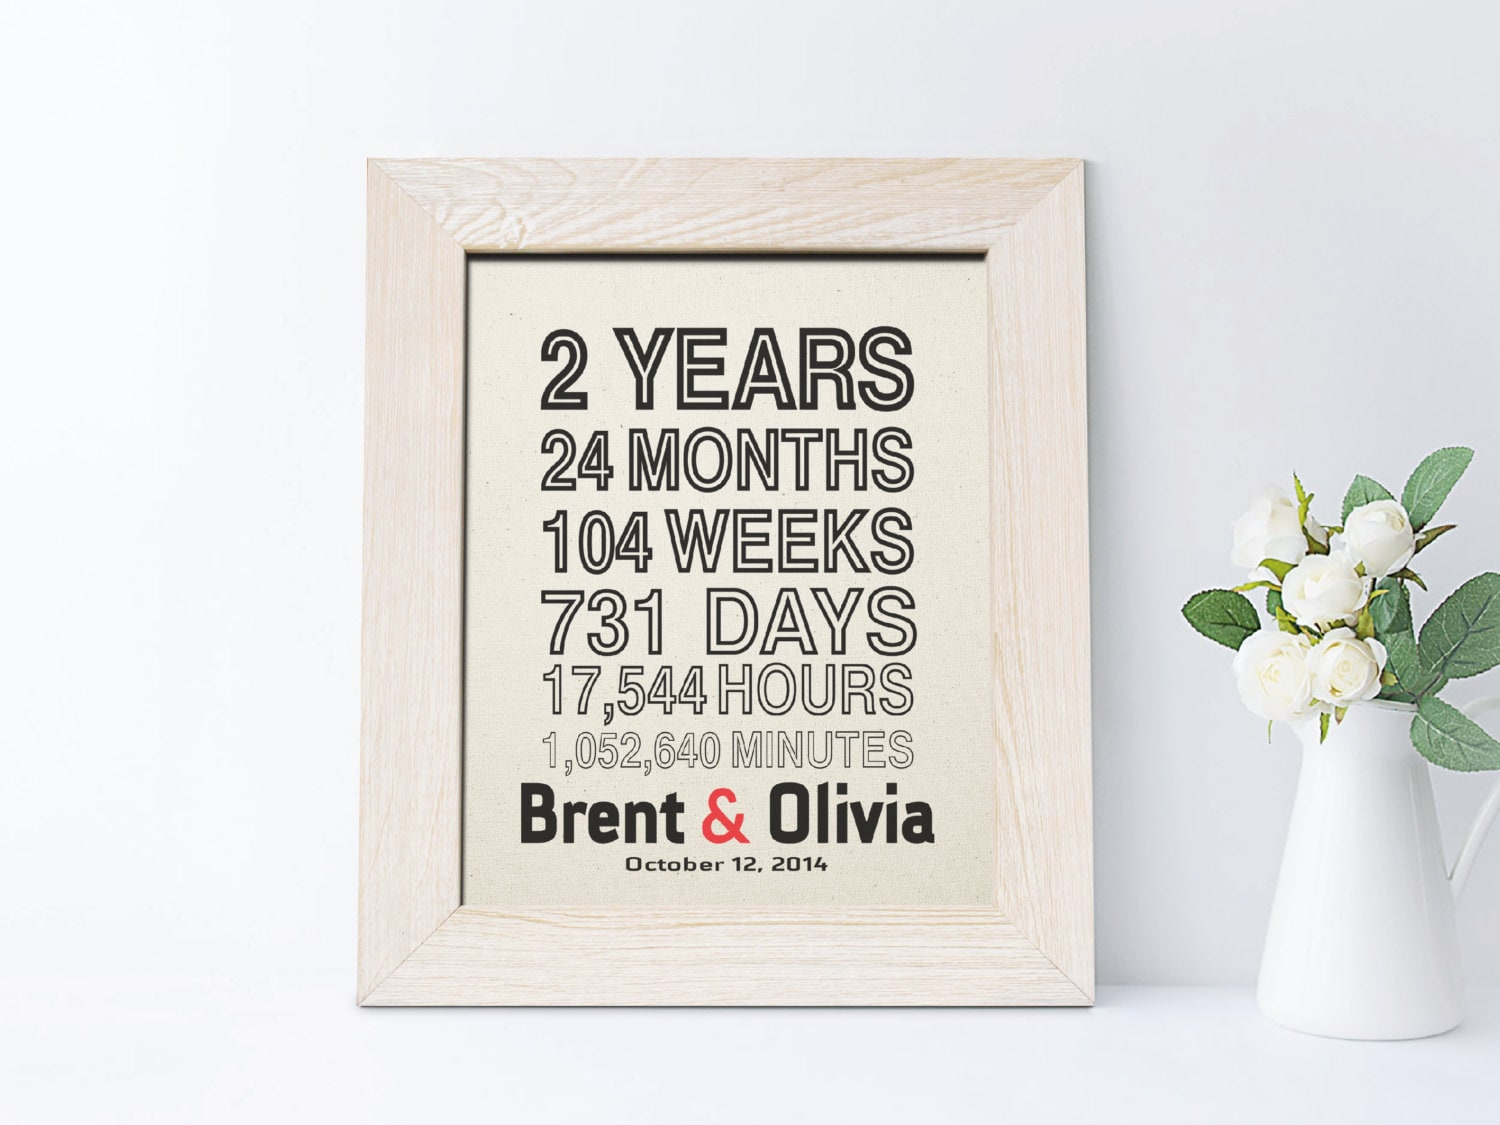 Second Wedding Anniversary Gifts For Men: 2nd Anniversary Gift For Husband Cotton Anniversary Gift For